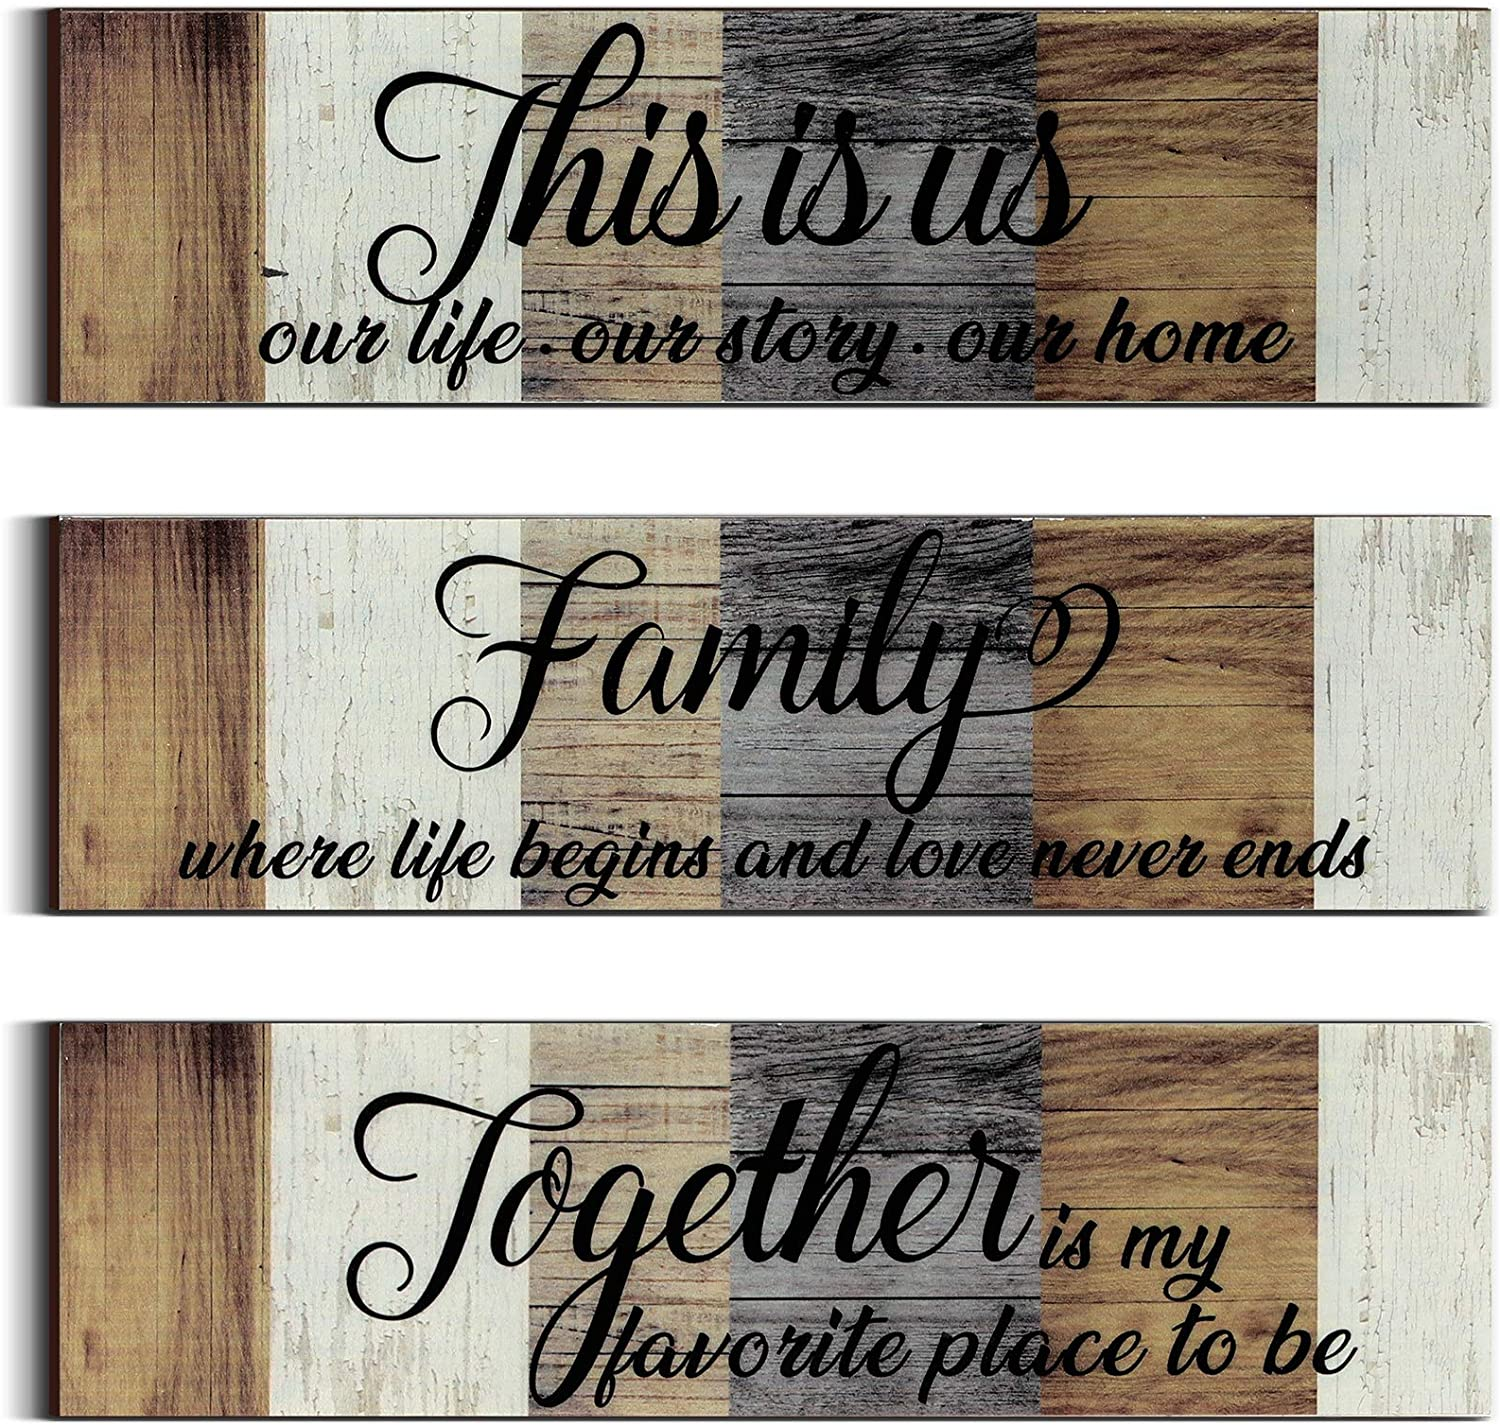 3 Pieces This is Us Sign Rustic Family Home Decor Wooden Sign Together Hanging Wall Decorations for Living Room Kitchen Bedroom Laundry Bathroom Office House Warming